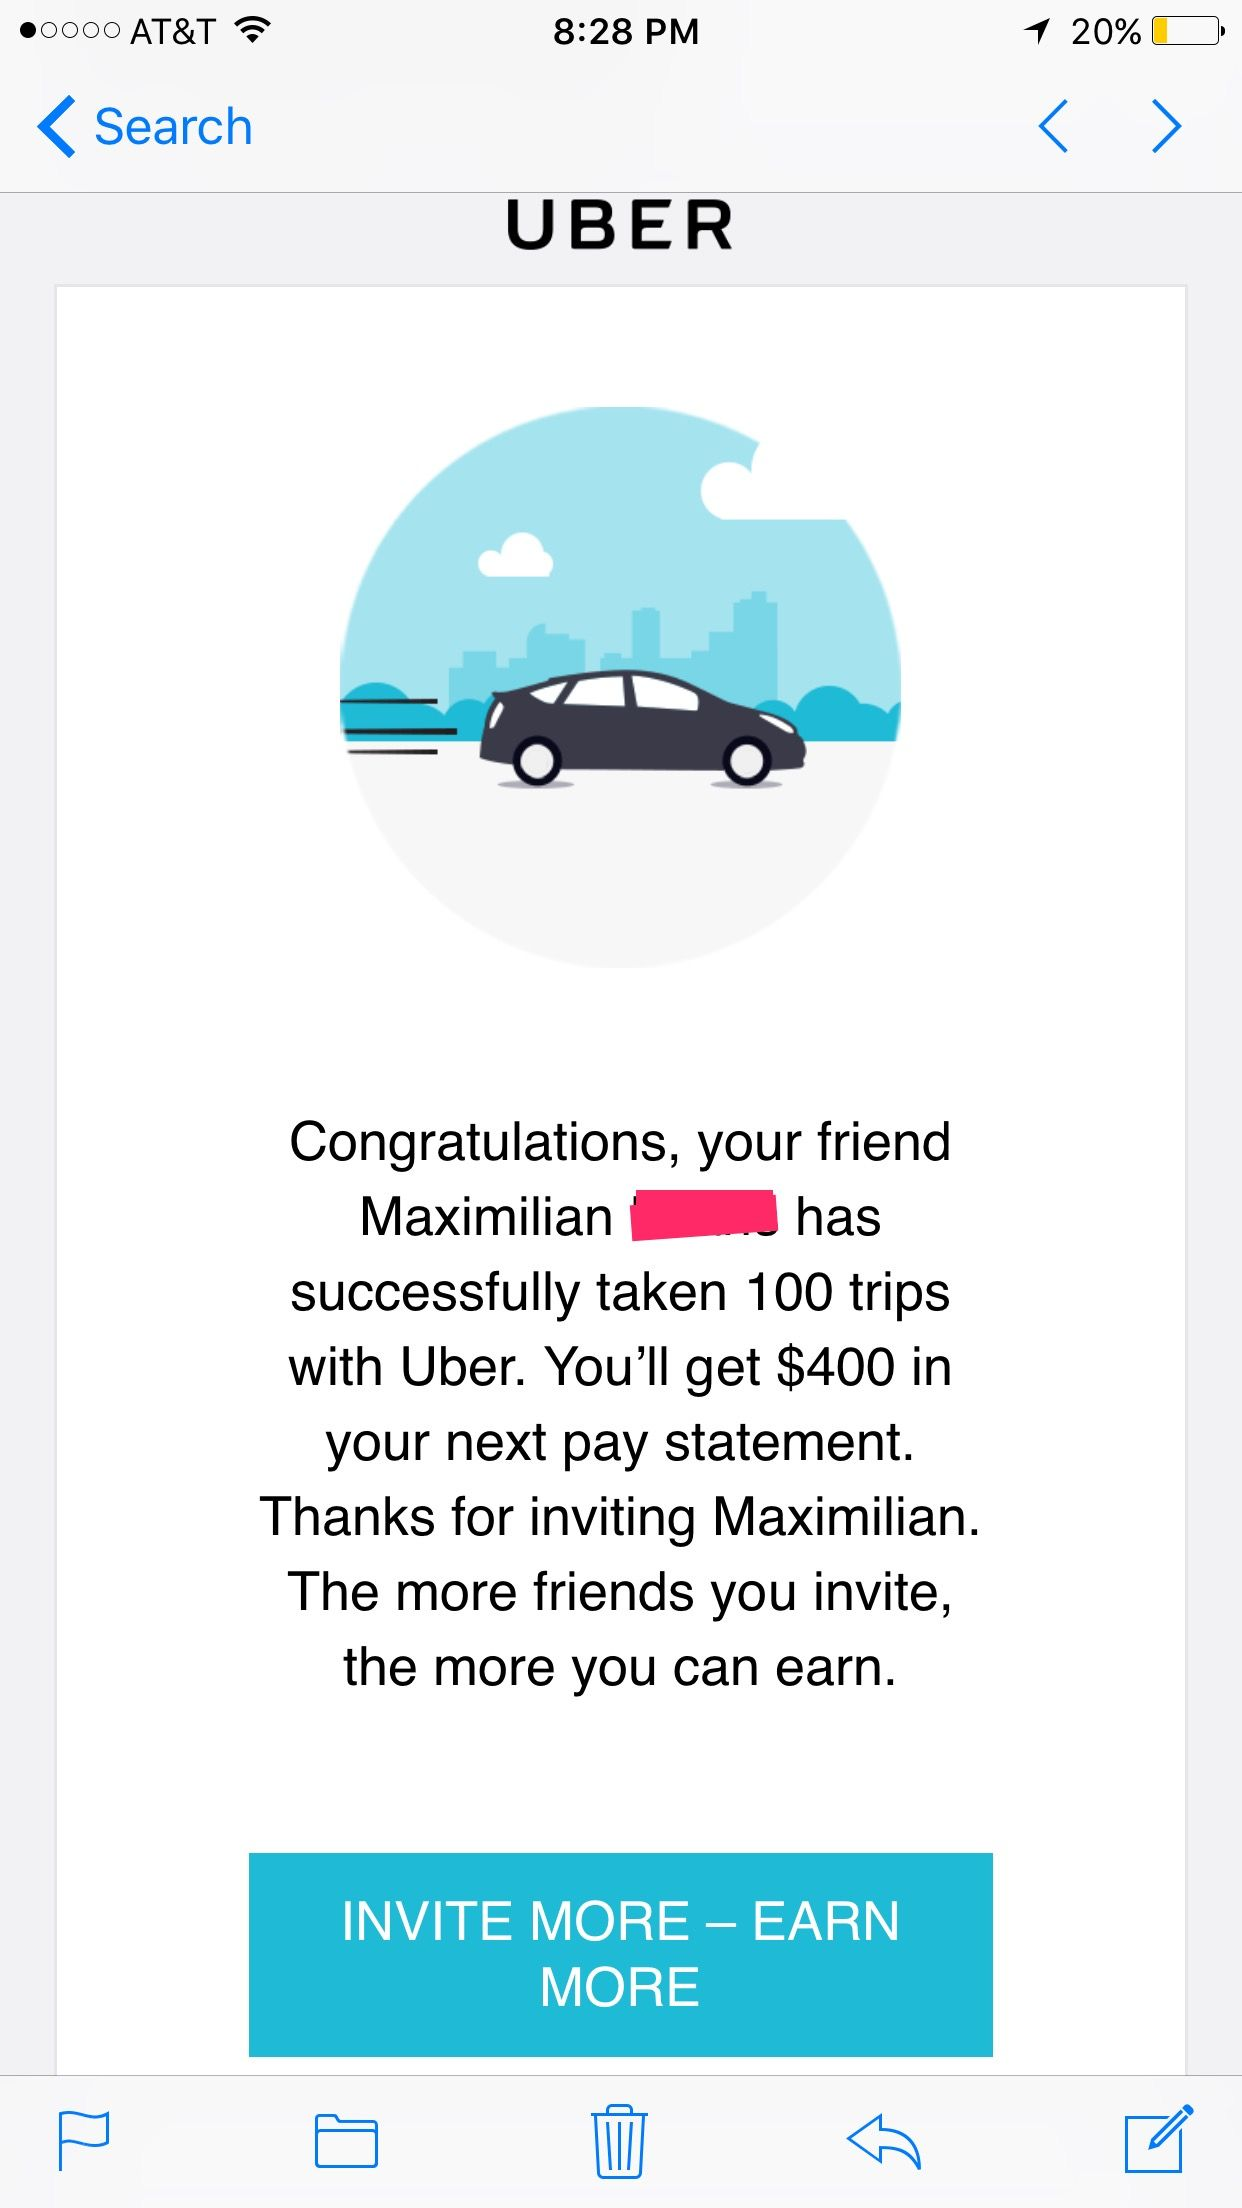 Email Uber Sends You Once Your Uber Referral Has Completed The